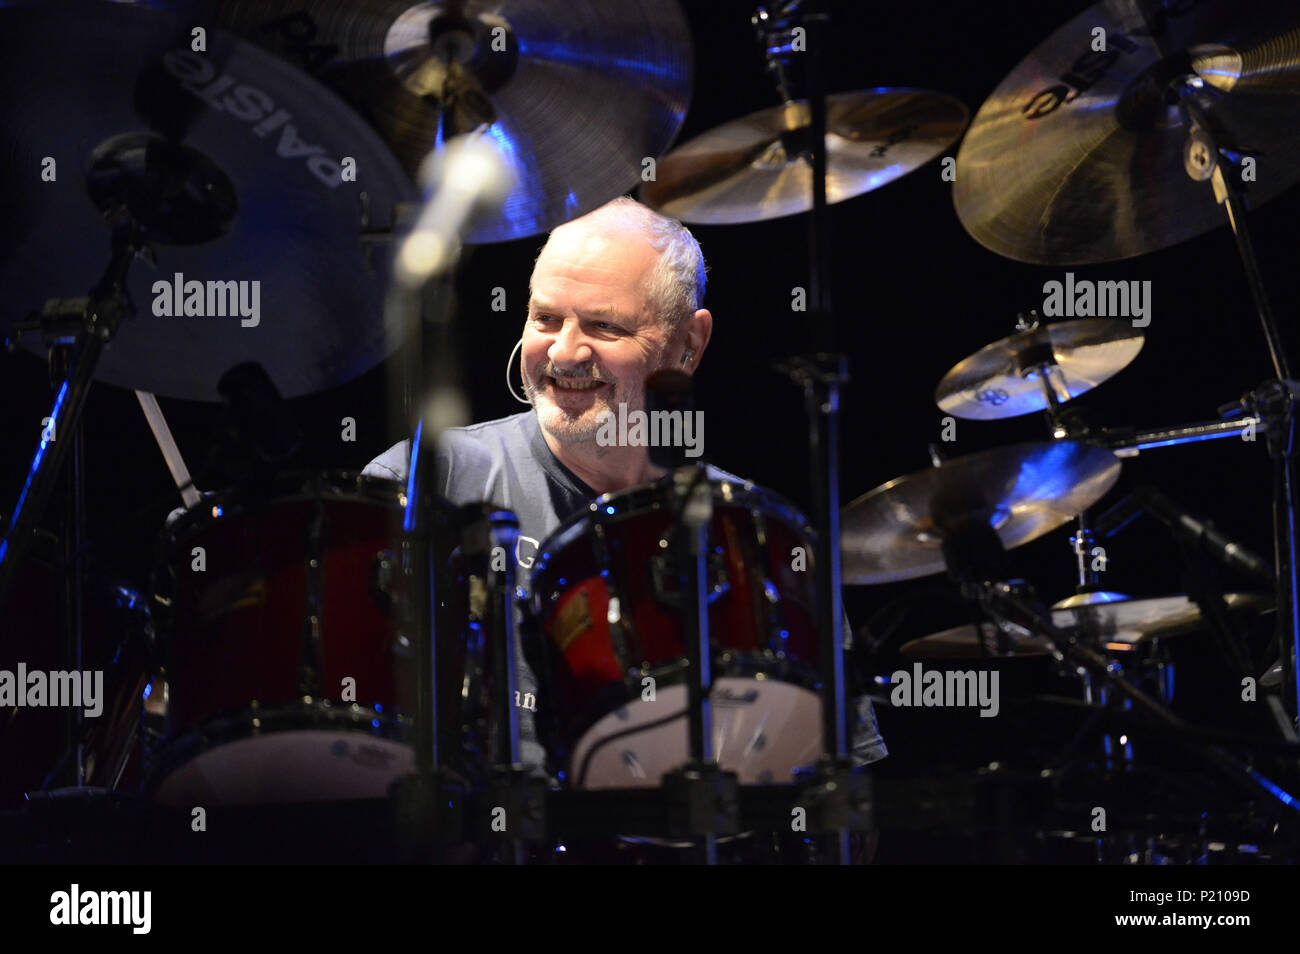 FILED - 28 October 2014, Germany, Hanover: The British drummer Jon Hiseman performing with the band Colosseum. A spokesperson from the music publisher Temple confirmed on the 13 June 2018 that the British jazz and rock drummer has died at the age of 73 after an operation on a brain tumour. Photo: Rudi Keuntje/Geisler-Fotopress/Geisler-Fotopress/dpa - Stock Image